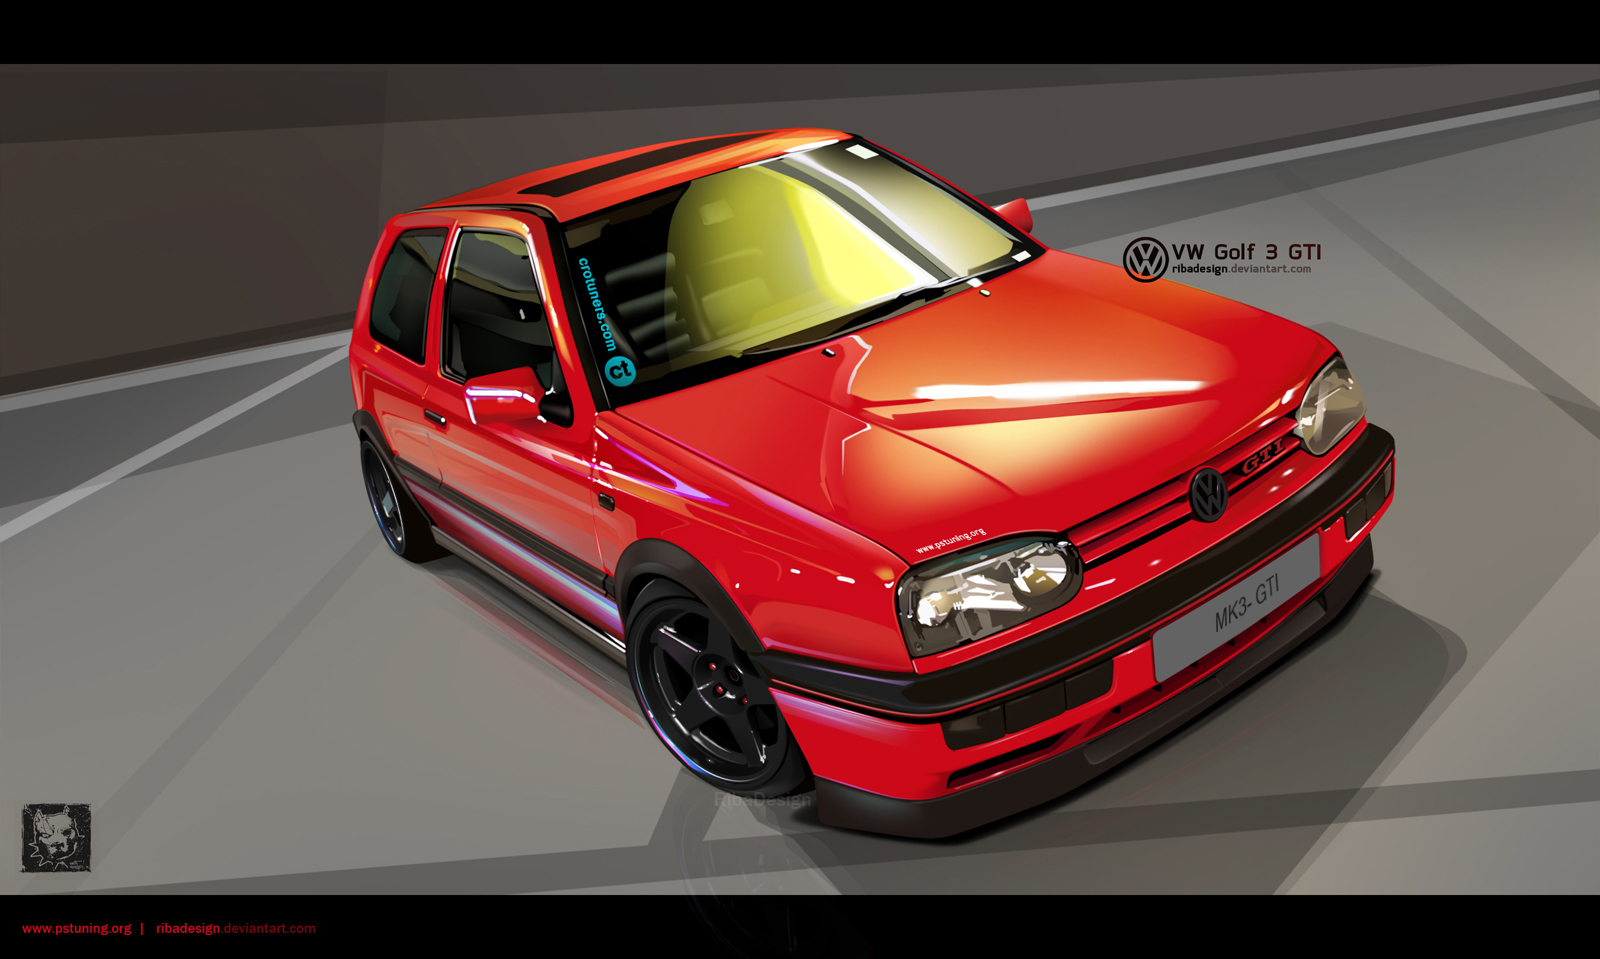 VW Golf MK3 GTI vexel by RibaDesign